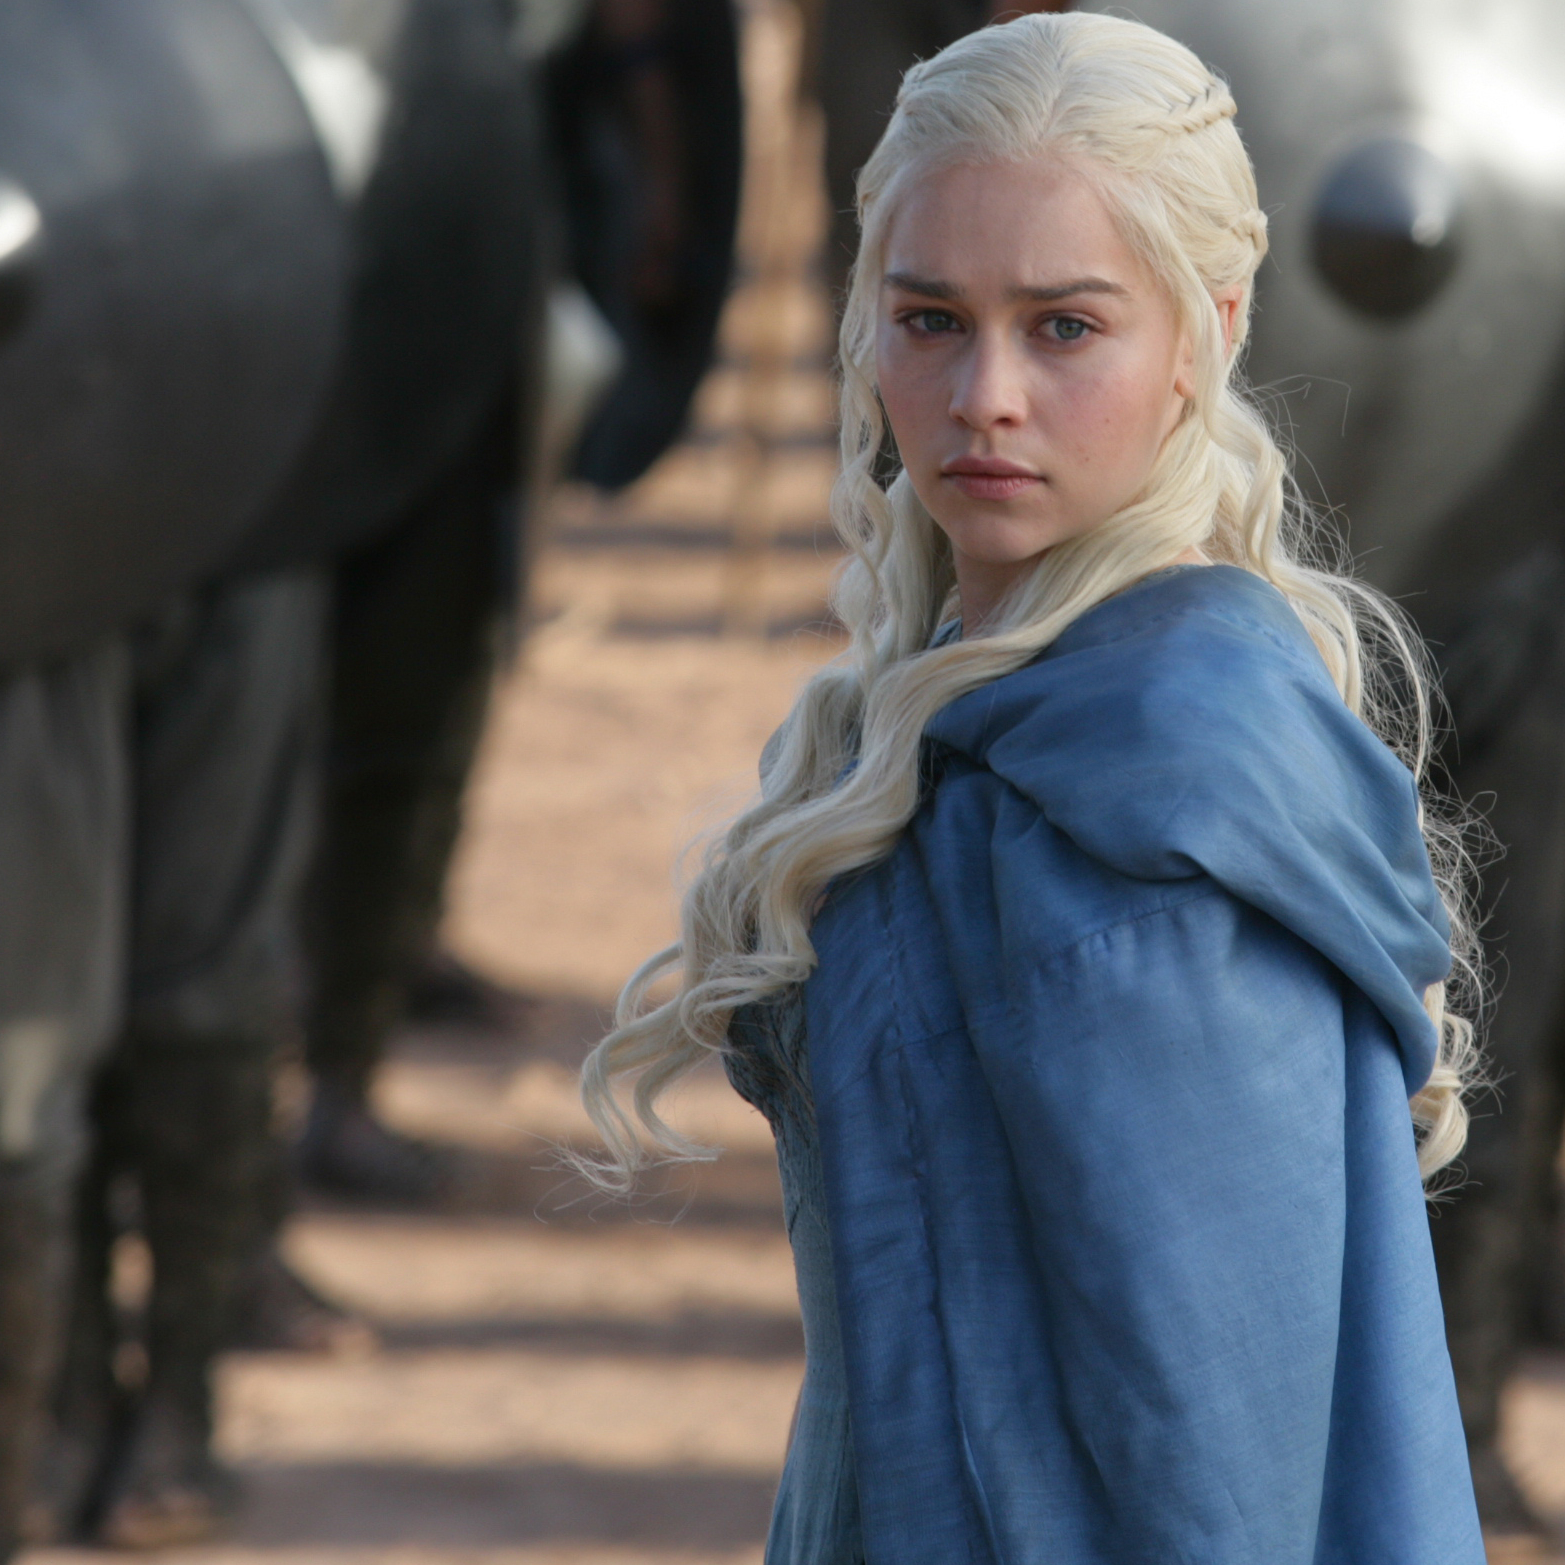 Emilia Clarke plays Daenerys Targaryen in HBO's Game of Thrones. The illicit popularity of show, based on George R.R. Martin's best-selling fantasy books, has wider implications for the future of TV.